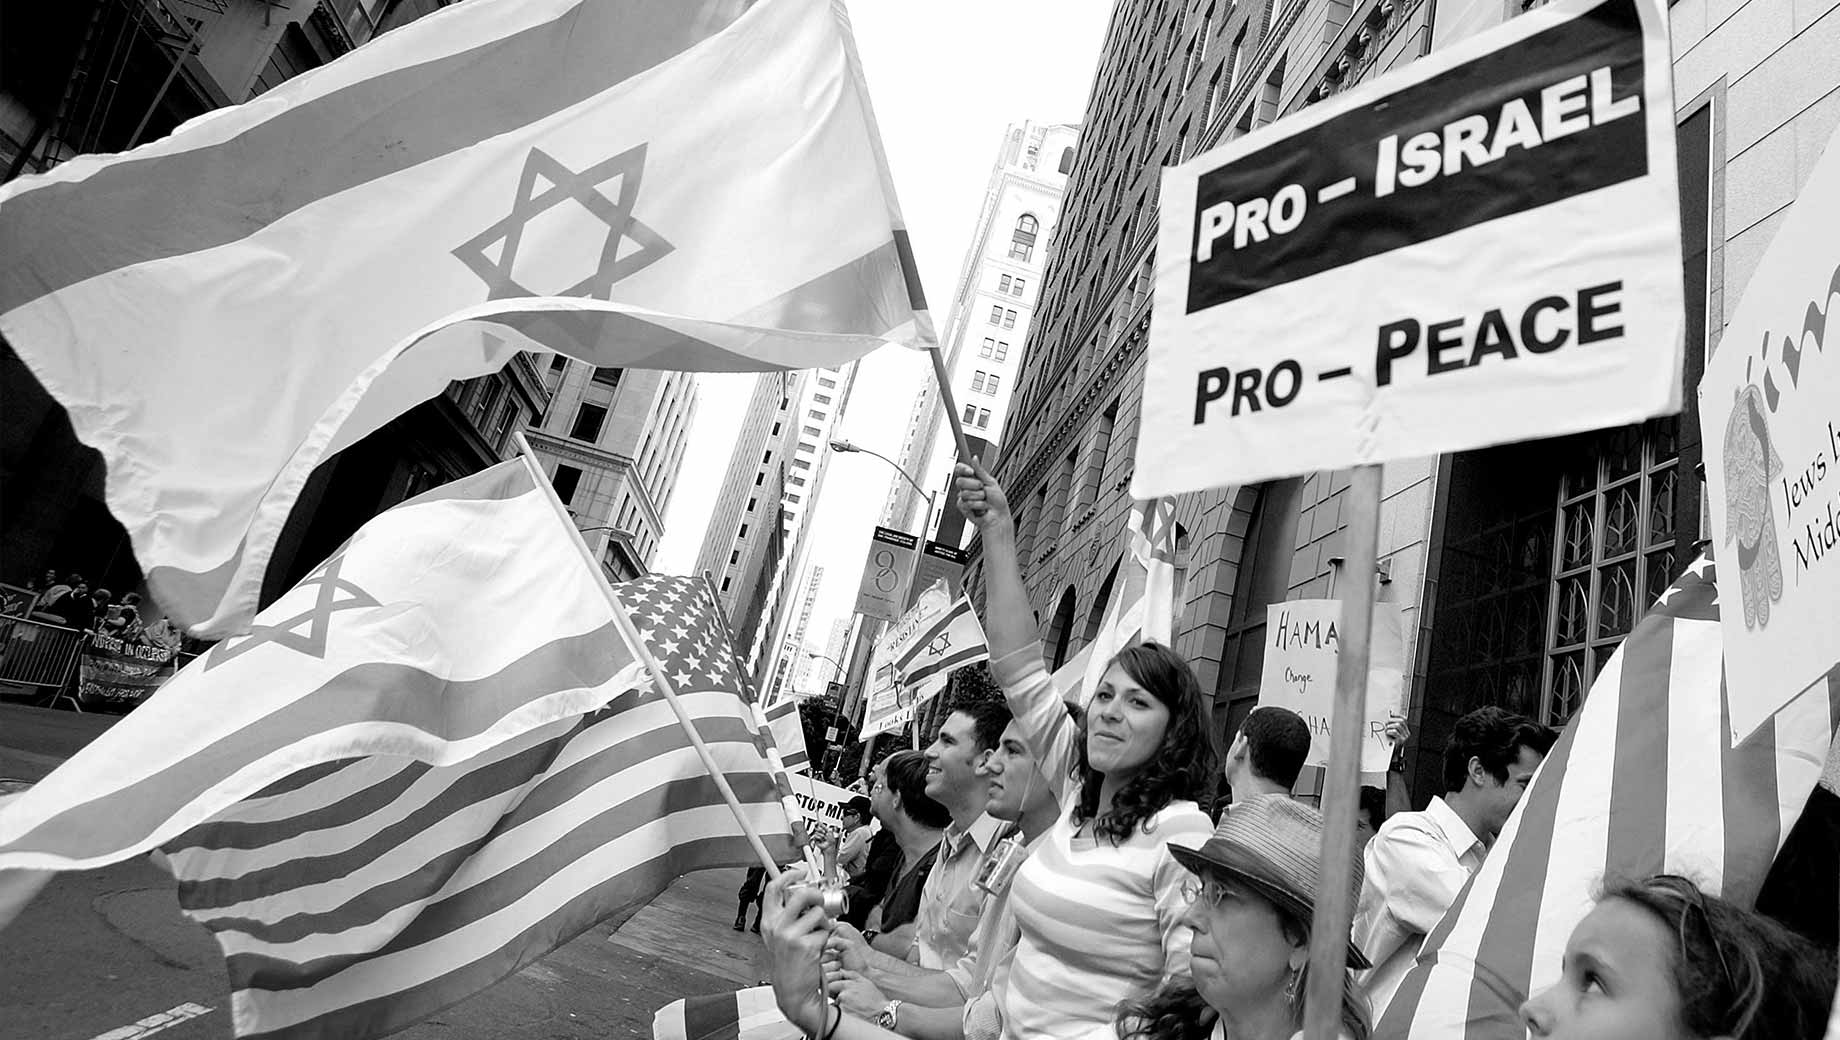 Americans' Views of Israel Remain Tied to Religious Beliefs